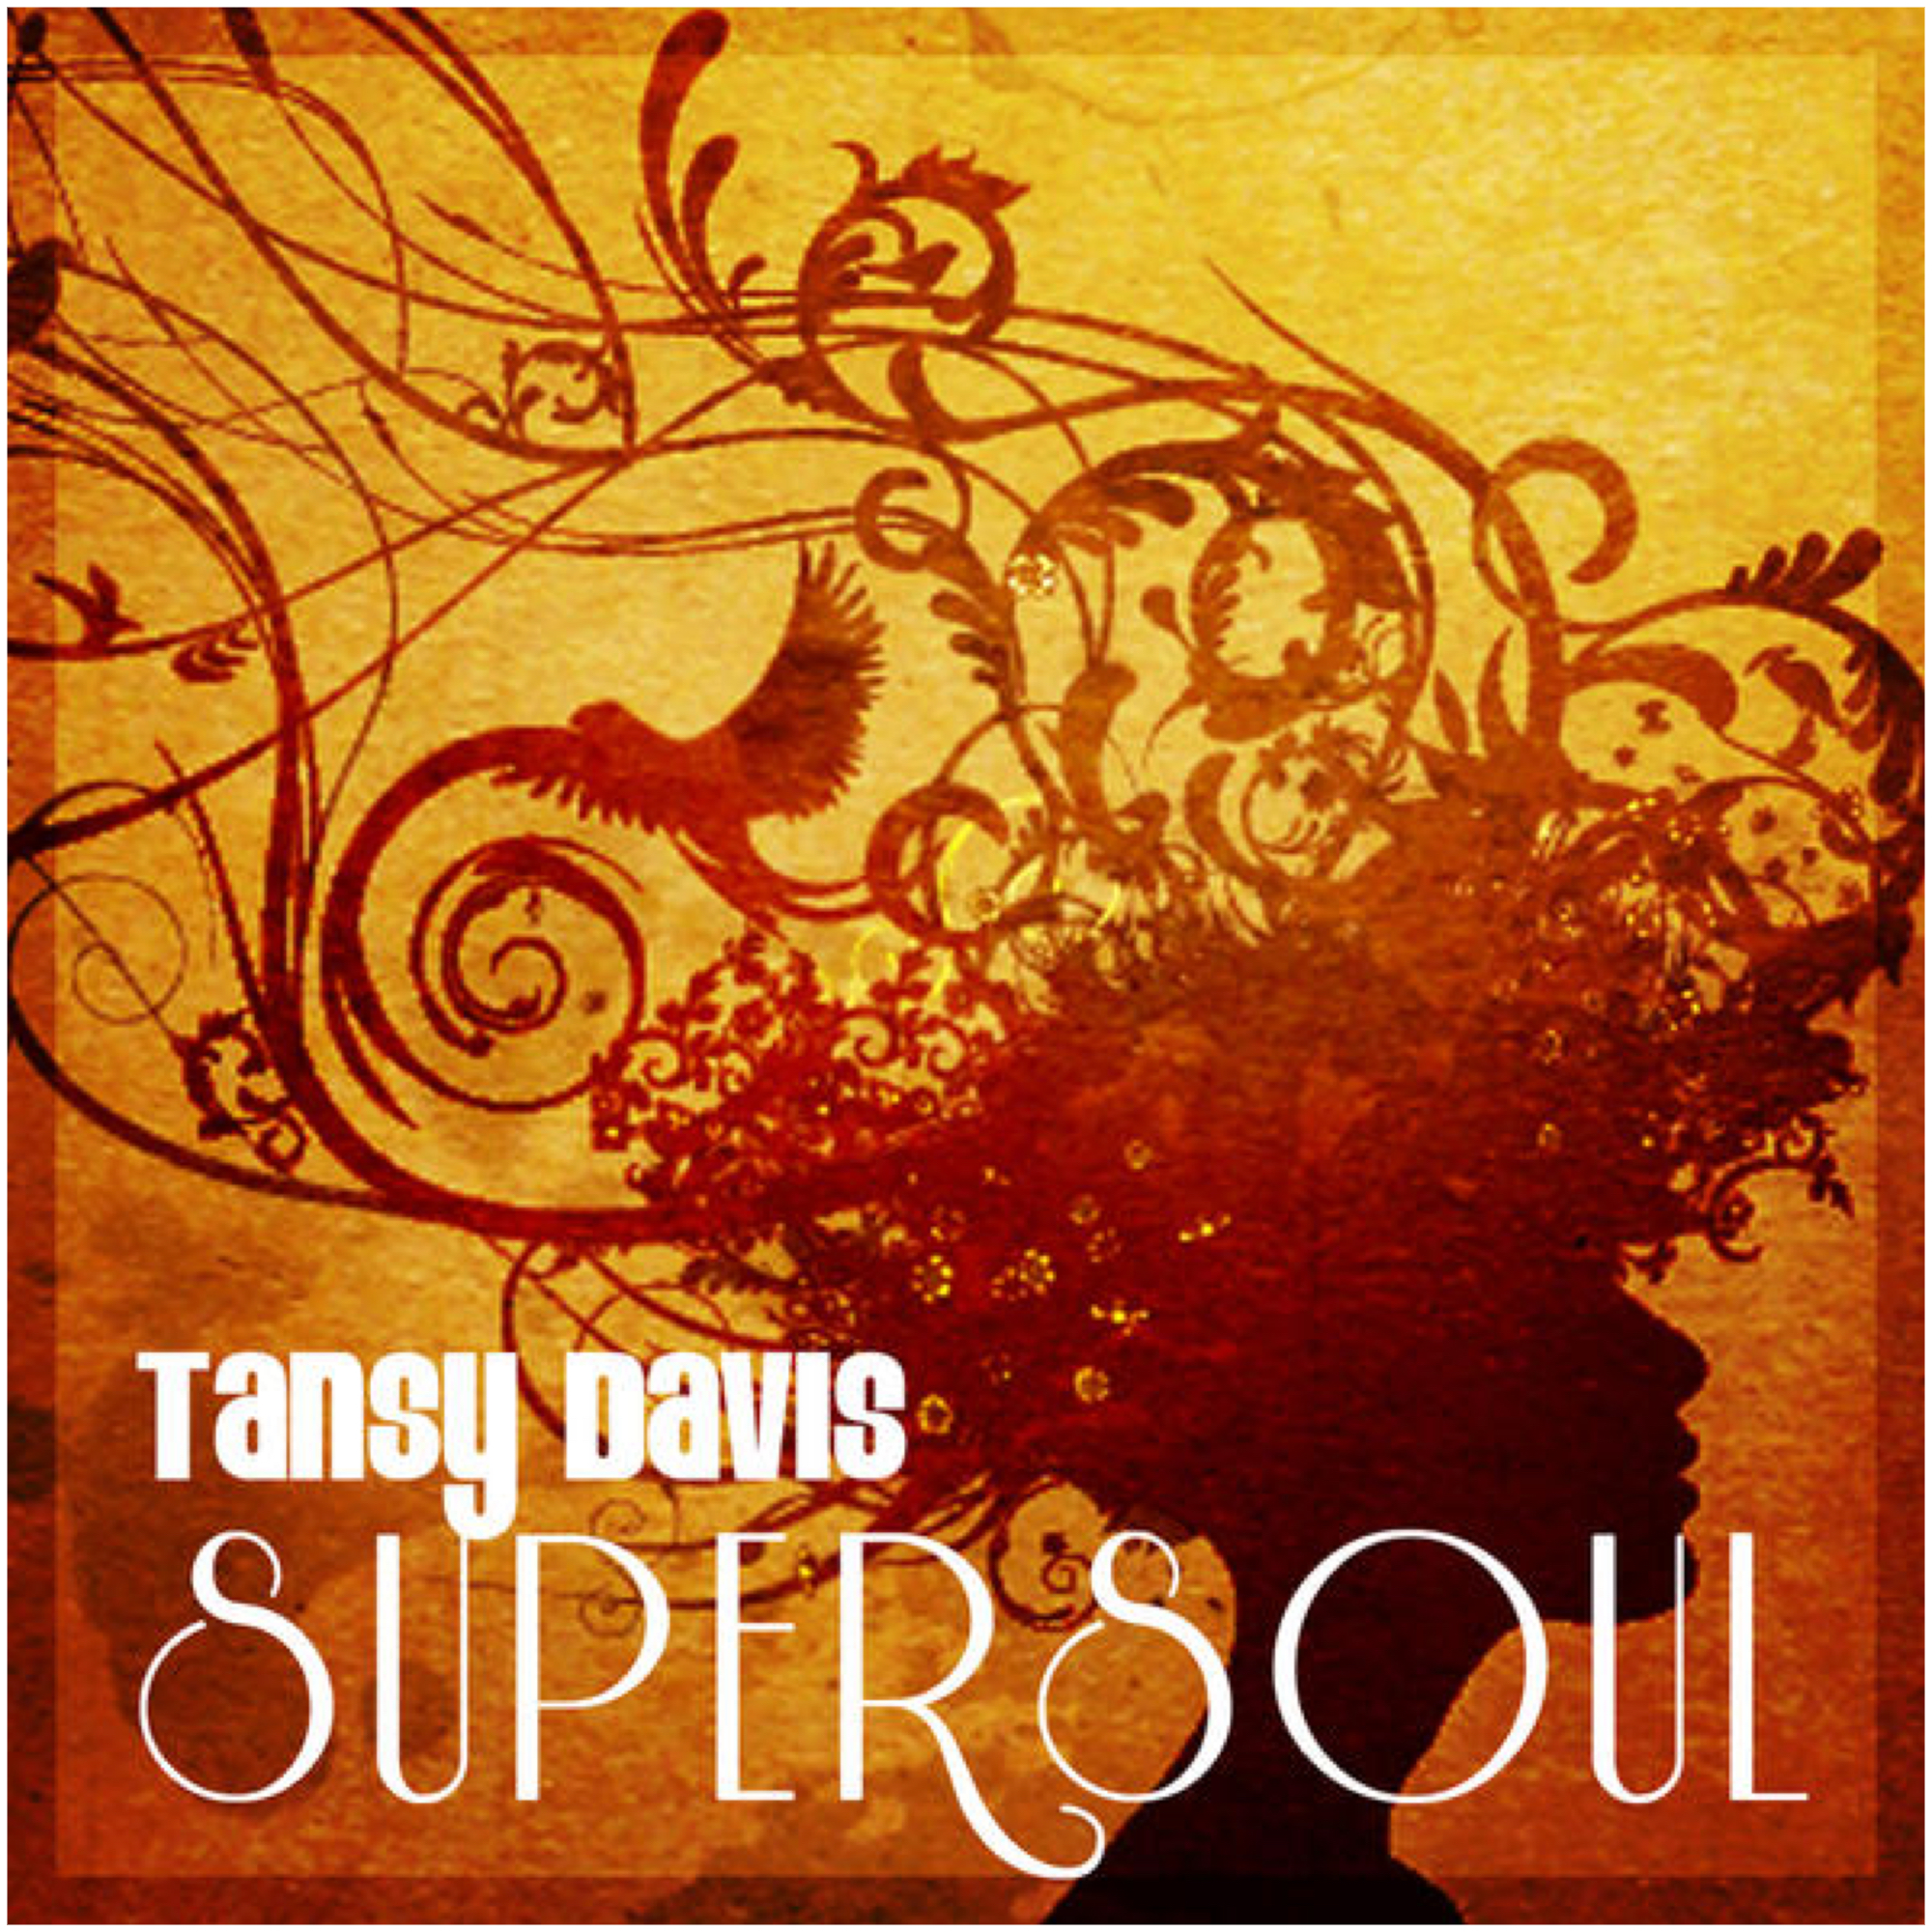 Tansy Davis Supersoul